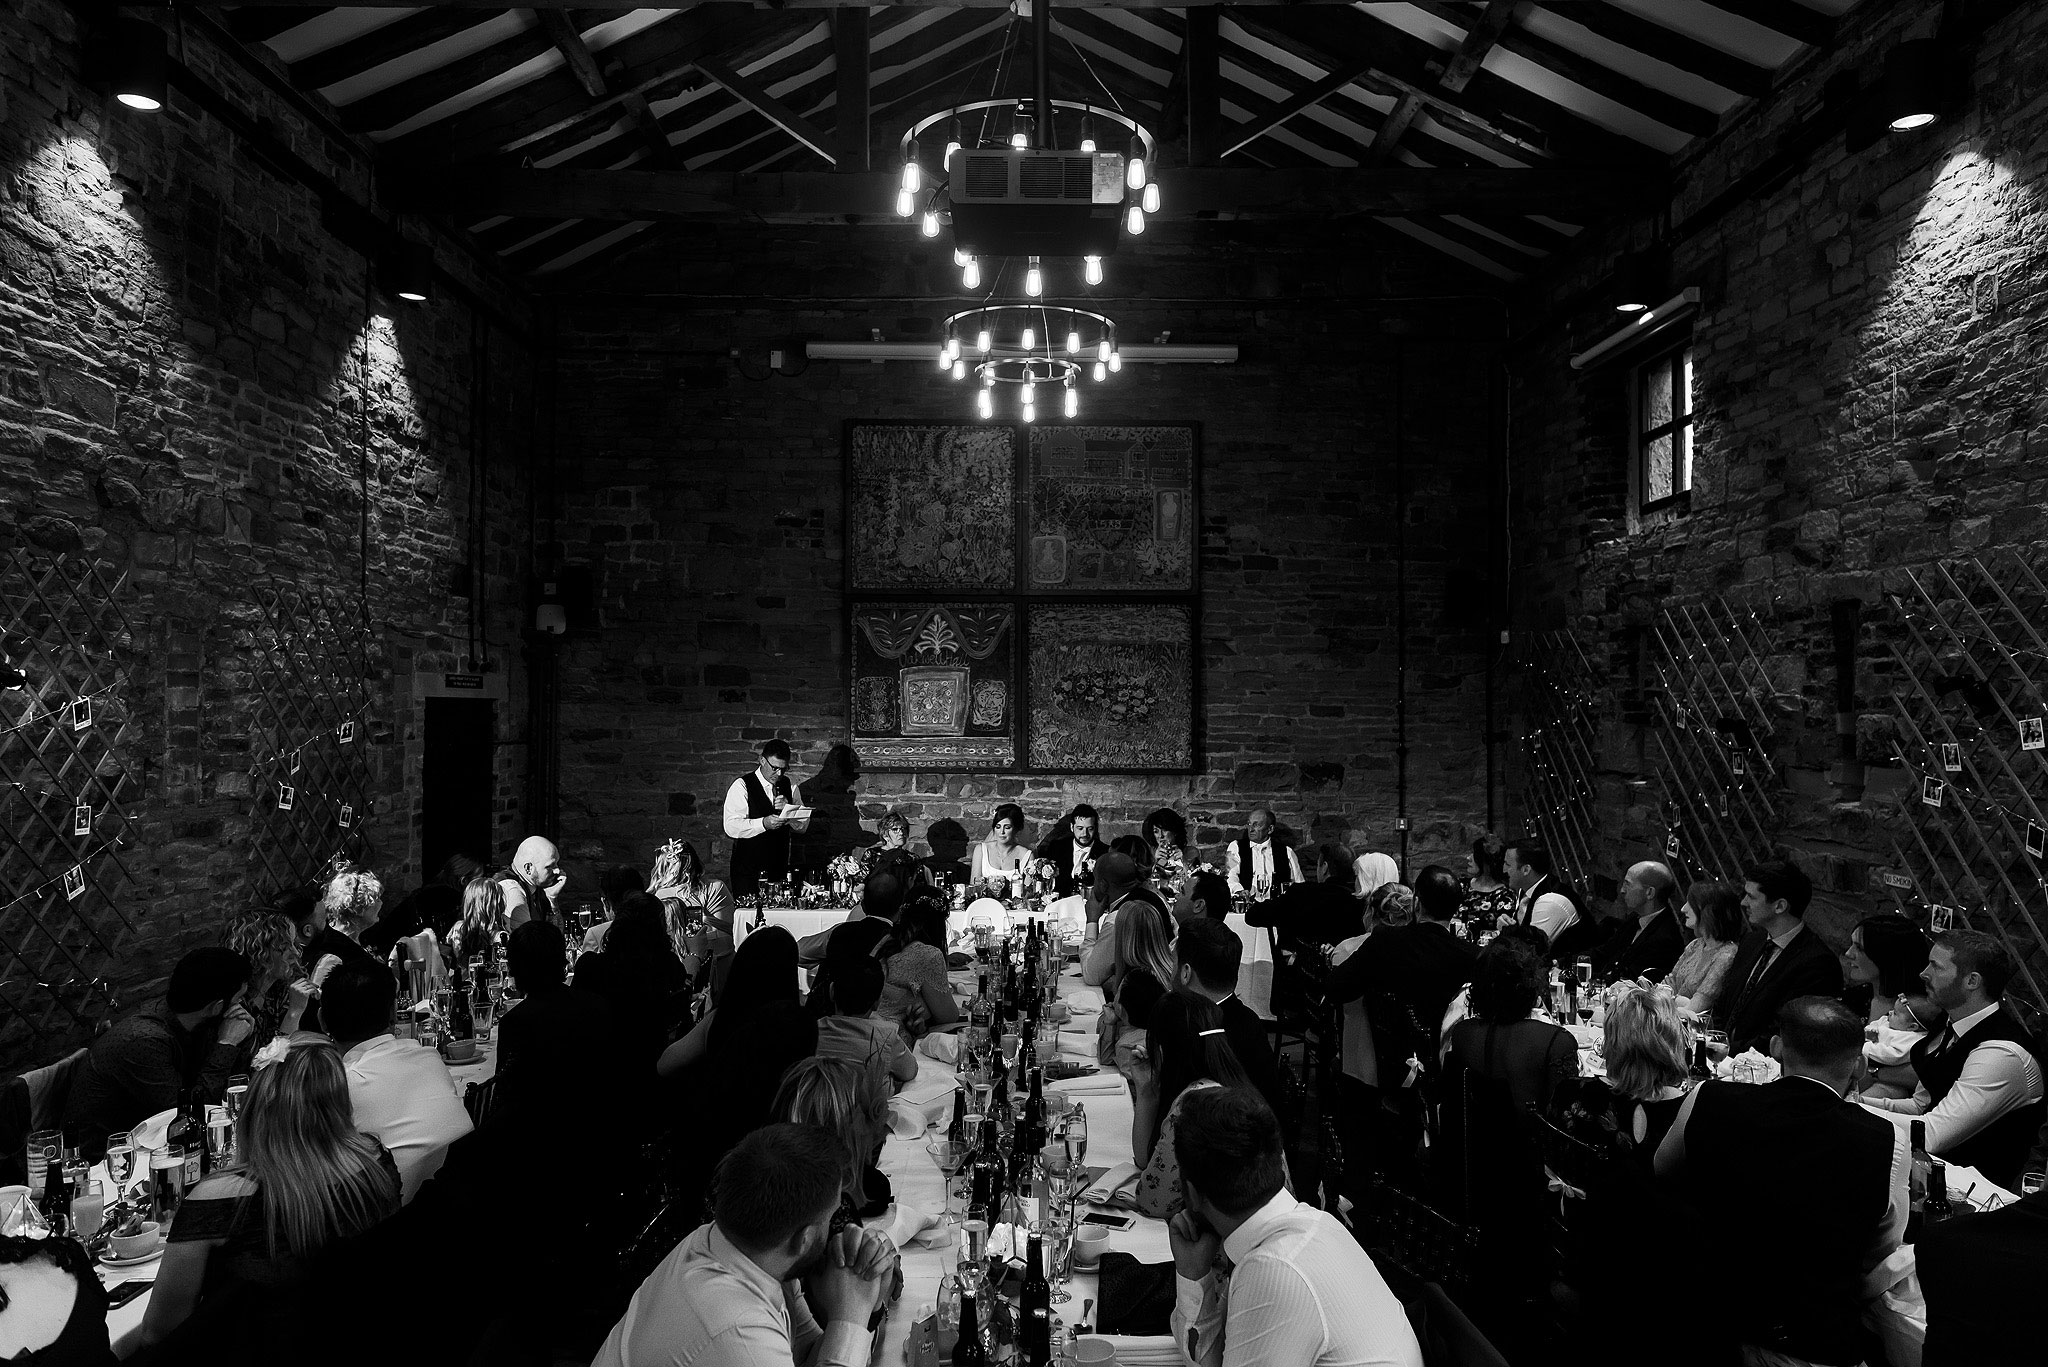 Oakwell Hall Barn wedding speeches with banqueting layout of tables